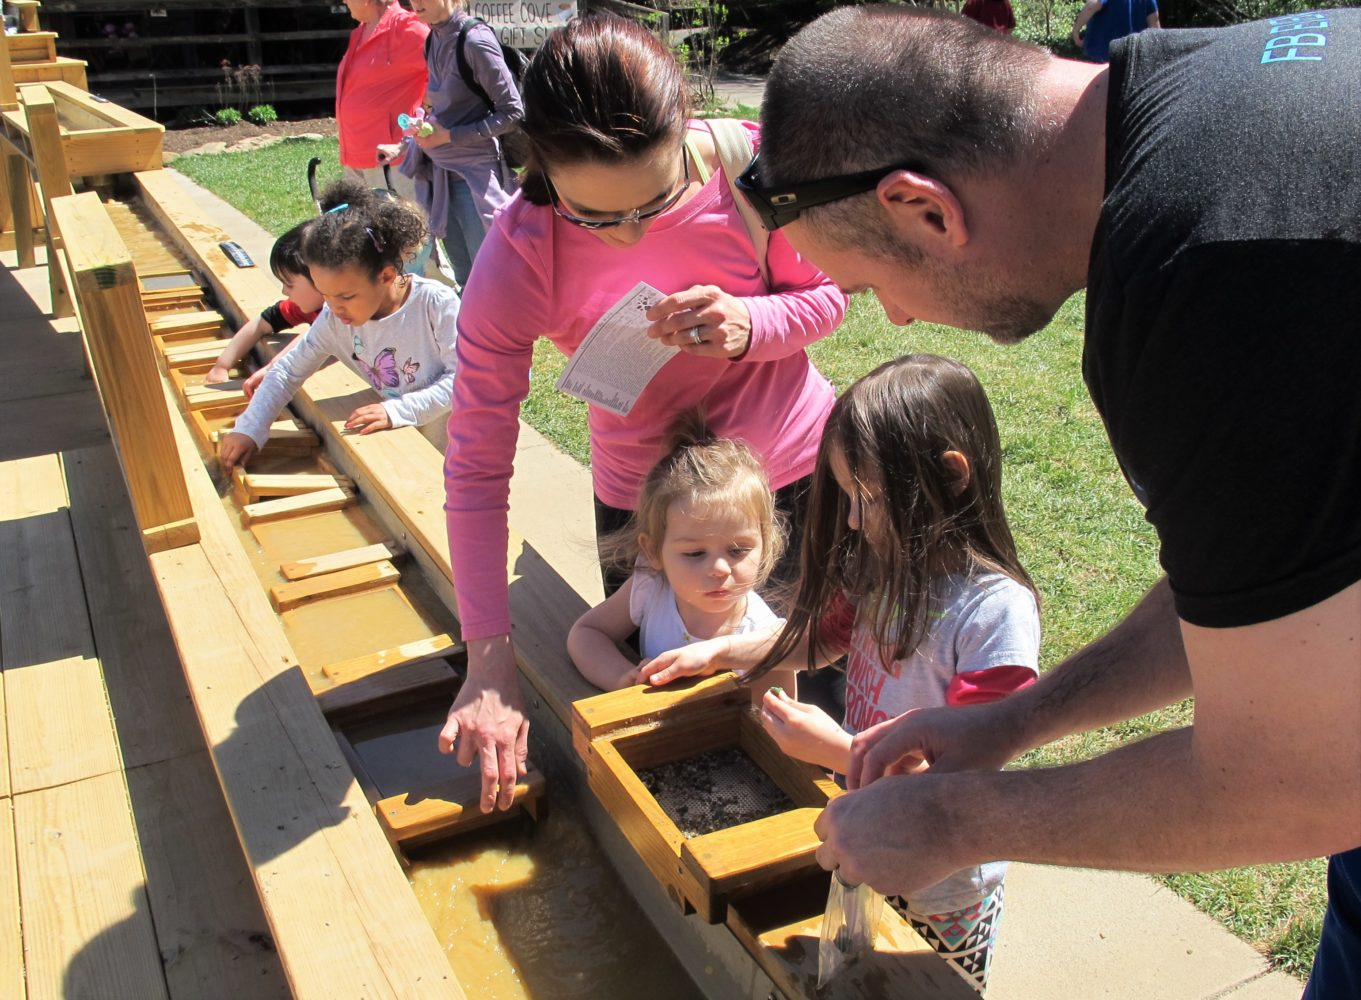 Family gem mining at the Nature Center